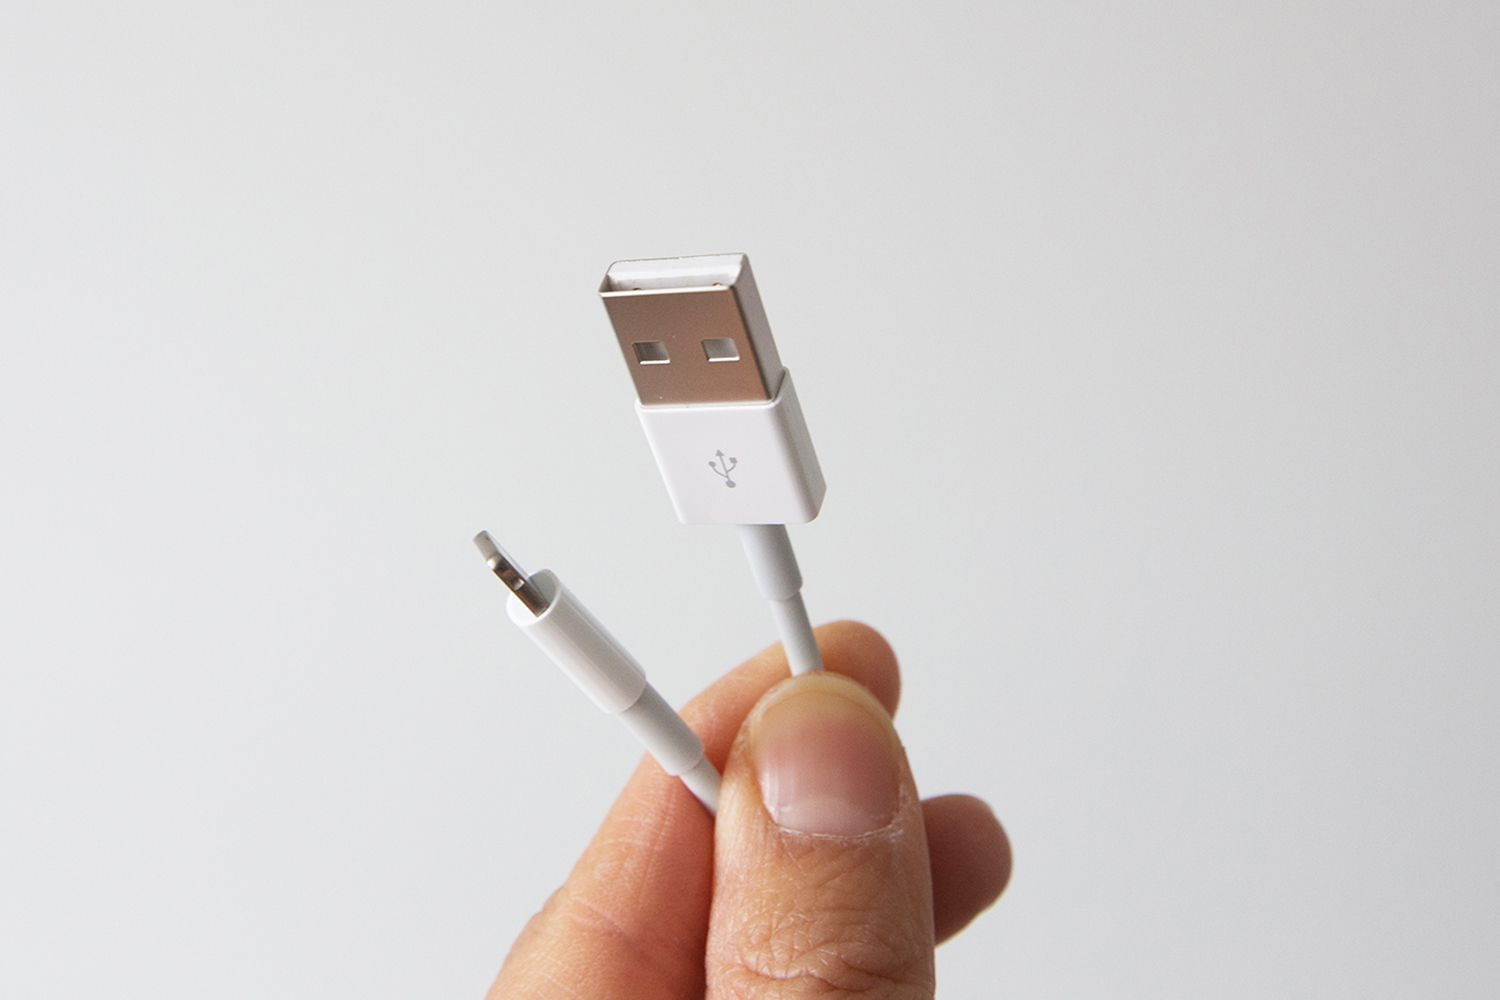 Apple Lightning to USB Cable (3-Foot